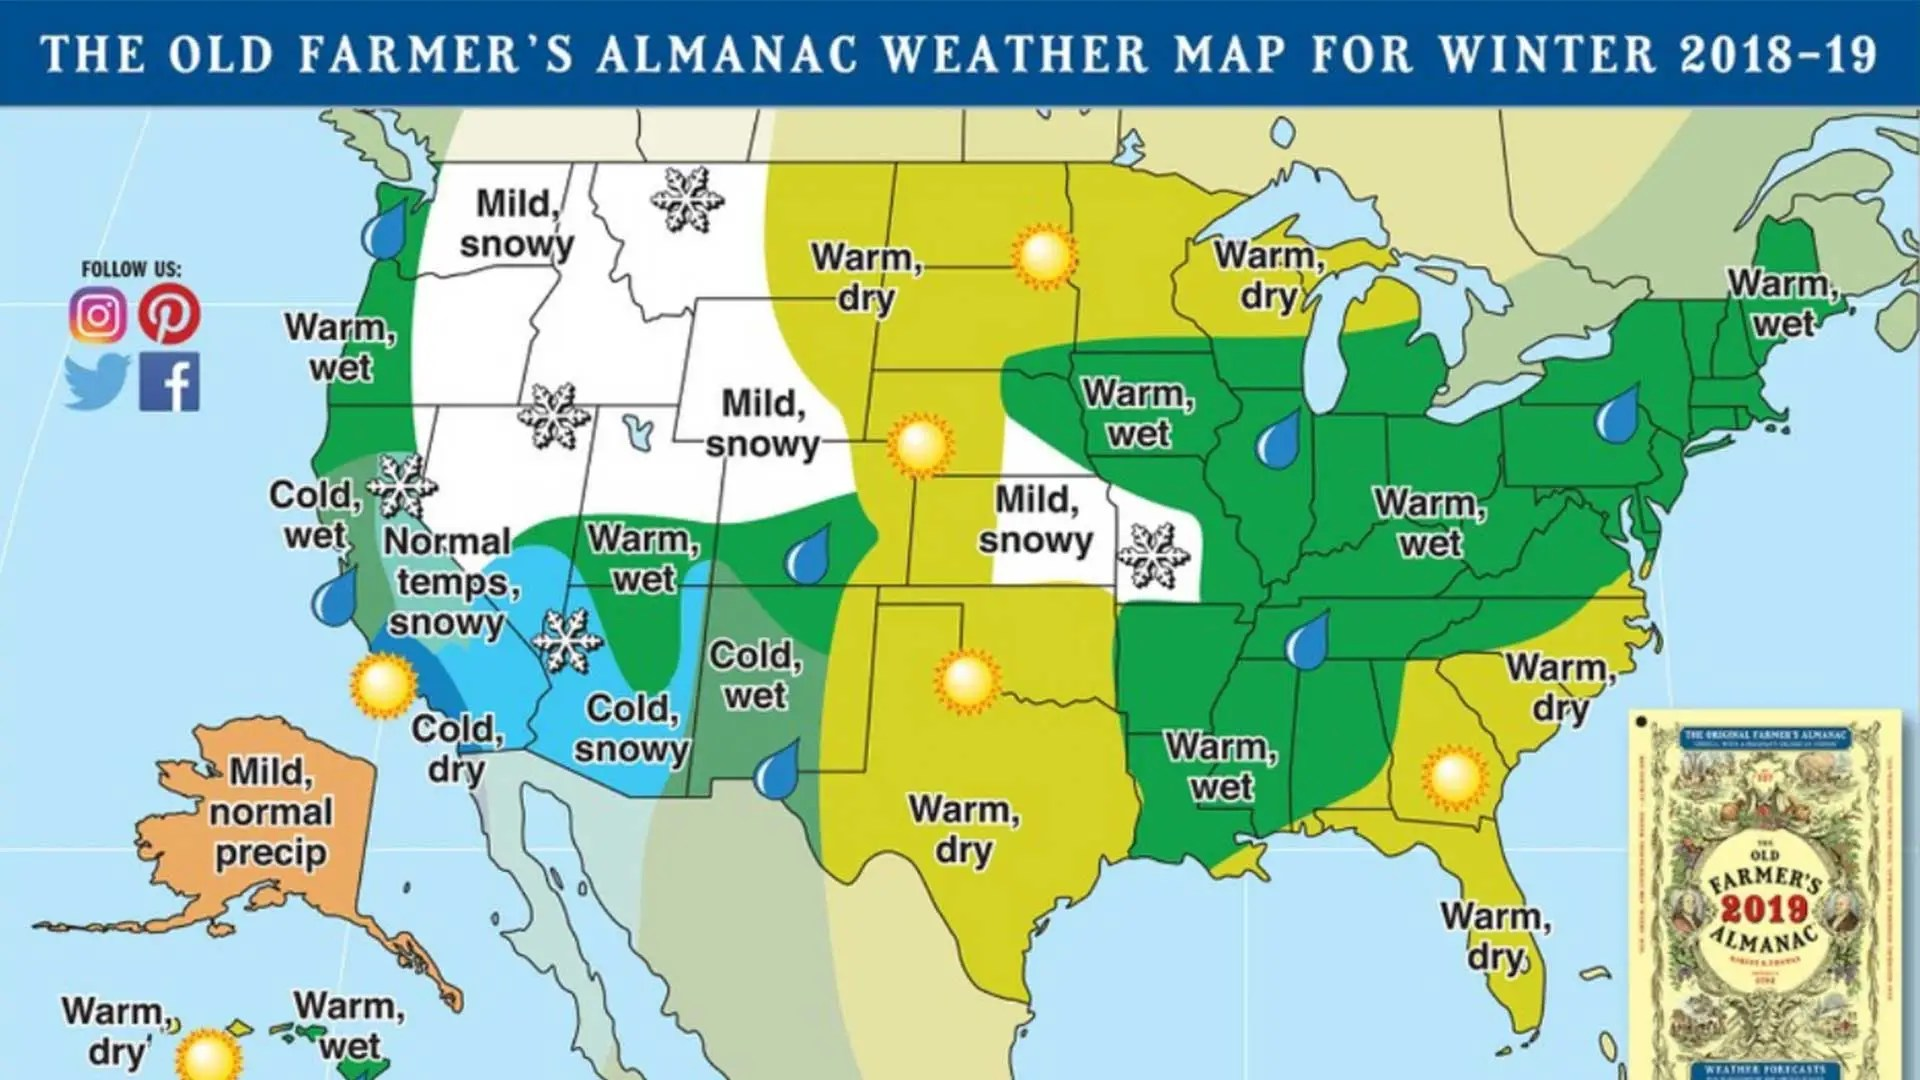 2019 Winter Weather Forecast For United States And Canadaold - Weather-forecast-us-map